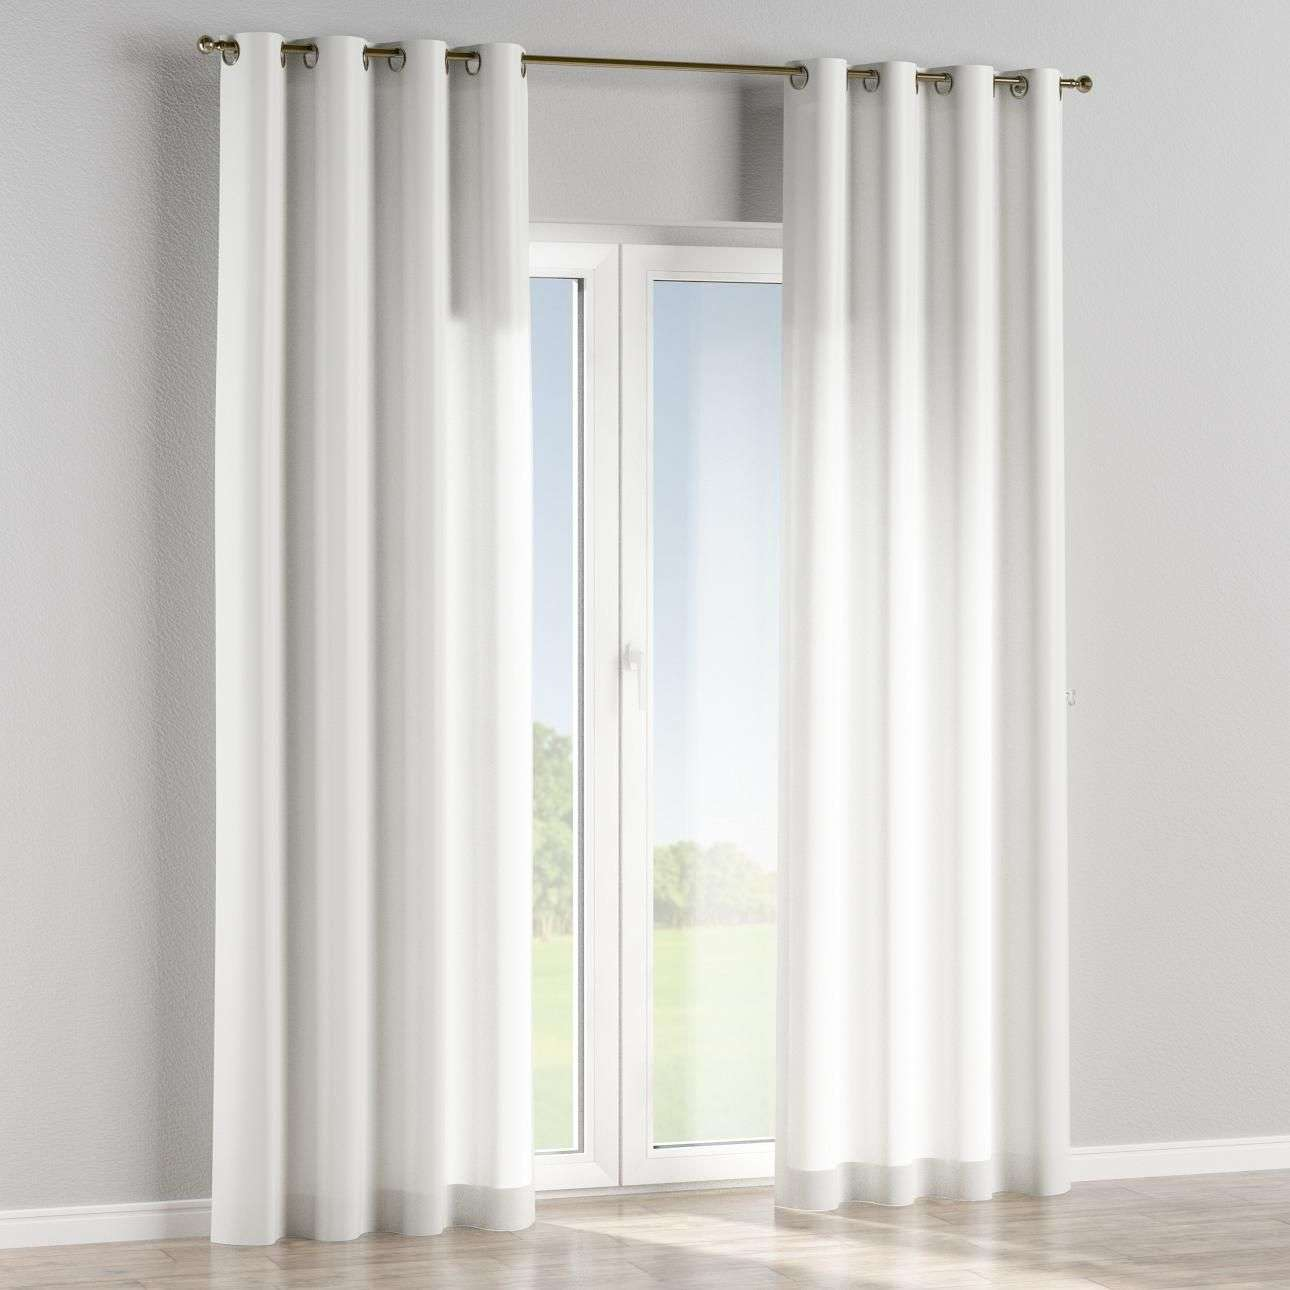 Eyelet curtains in collection Rustica, fabric: 138-15